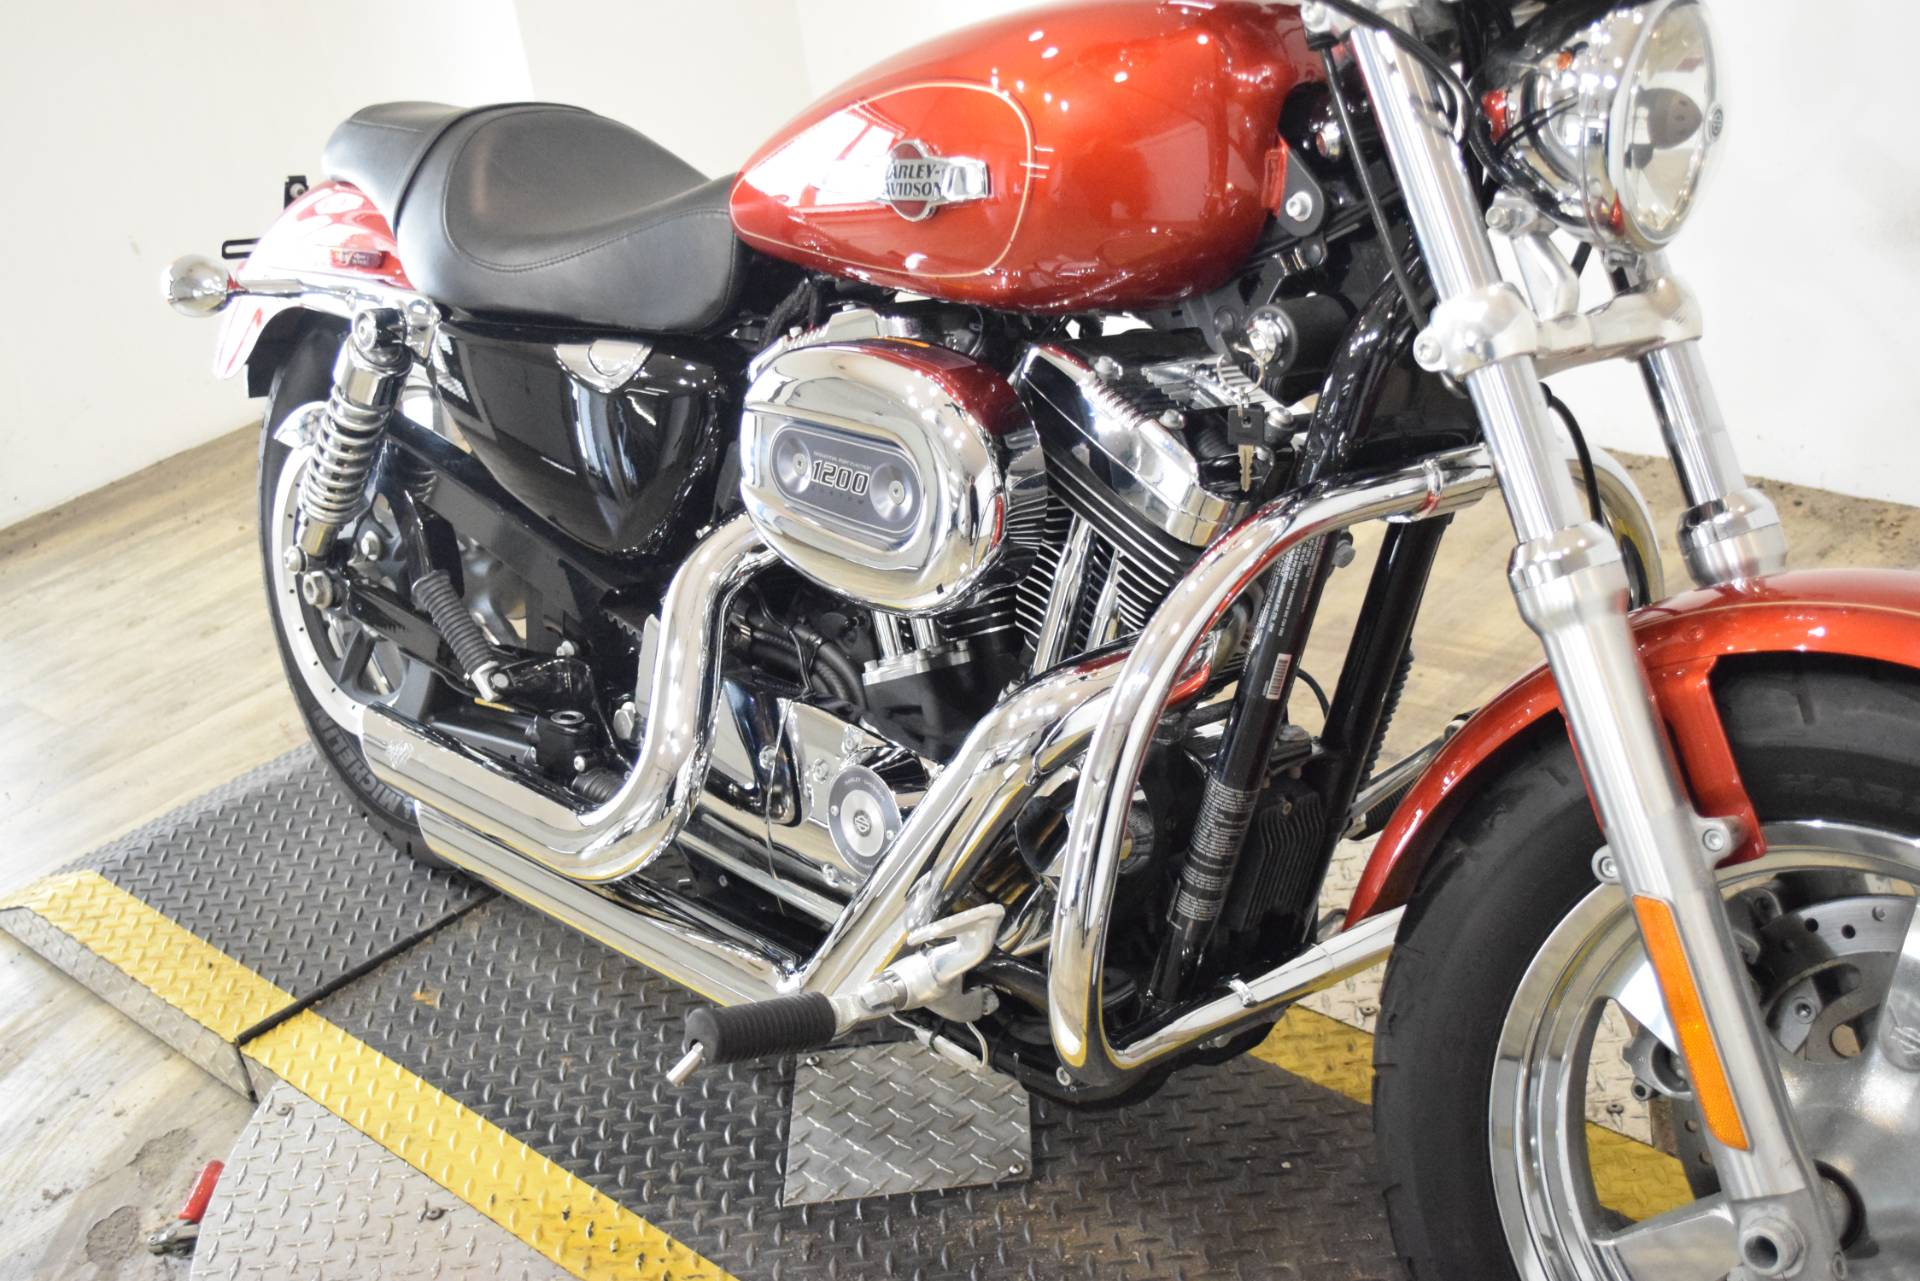 2014 Harley-Davidson XL1200 Sportster in Wauconda, Illinois - Photo 4